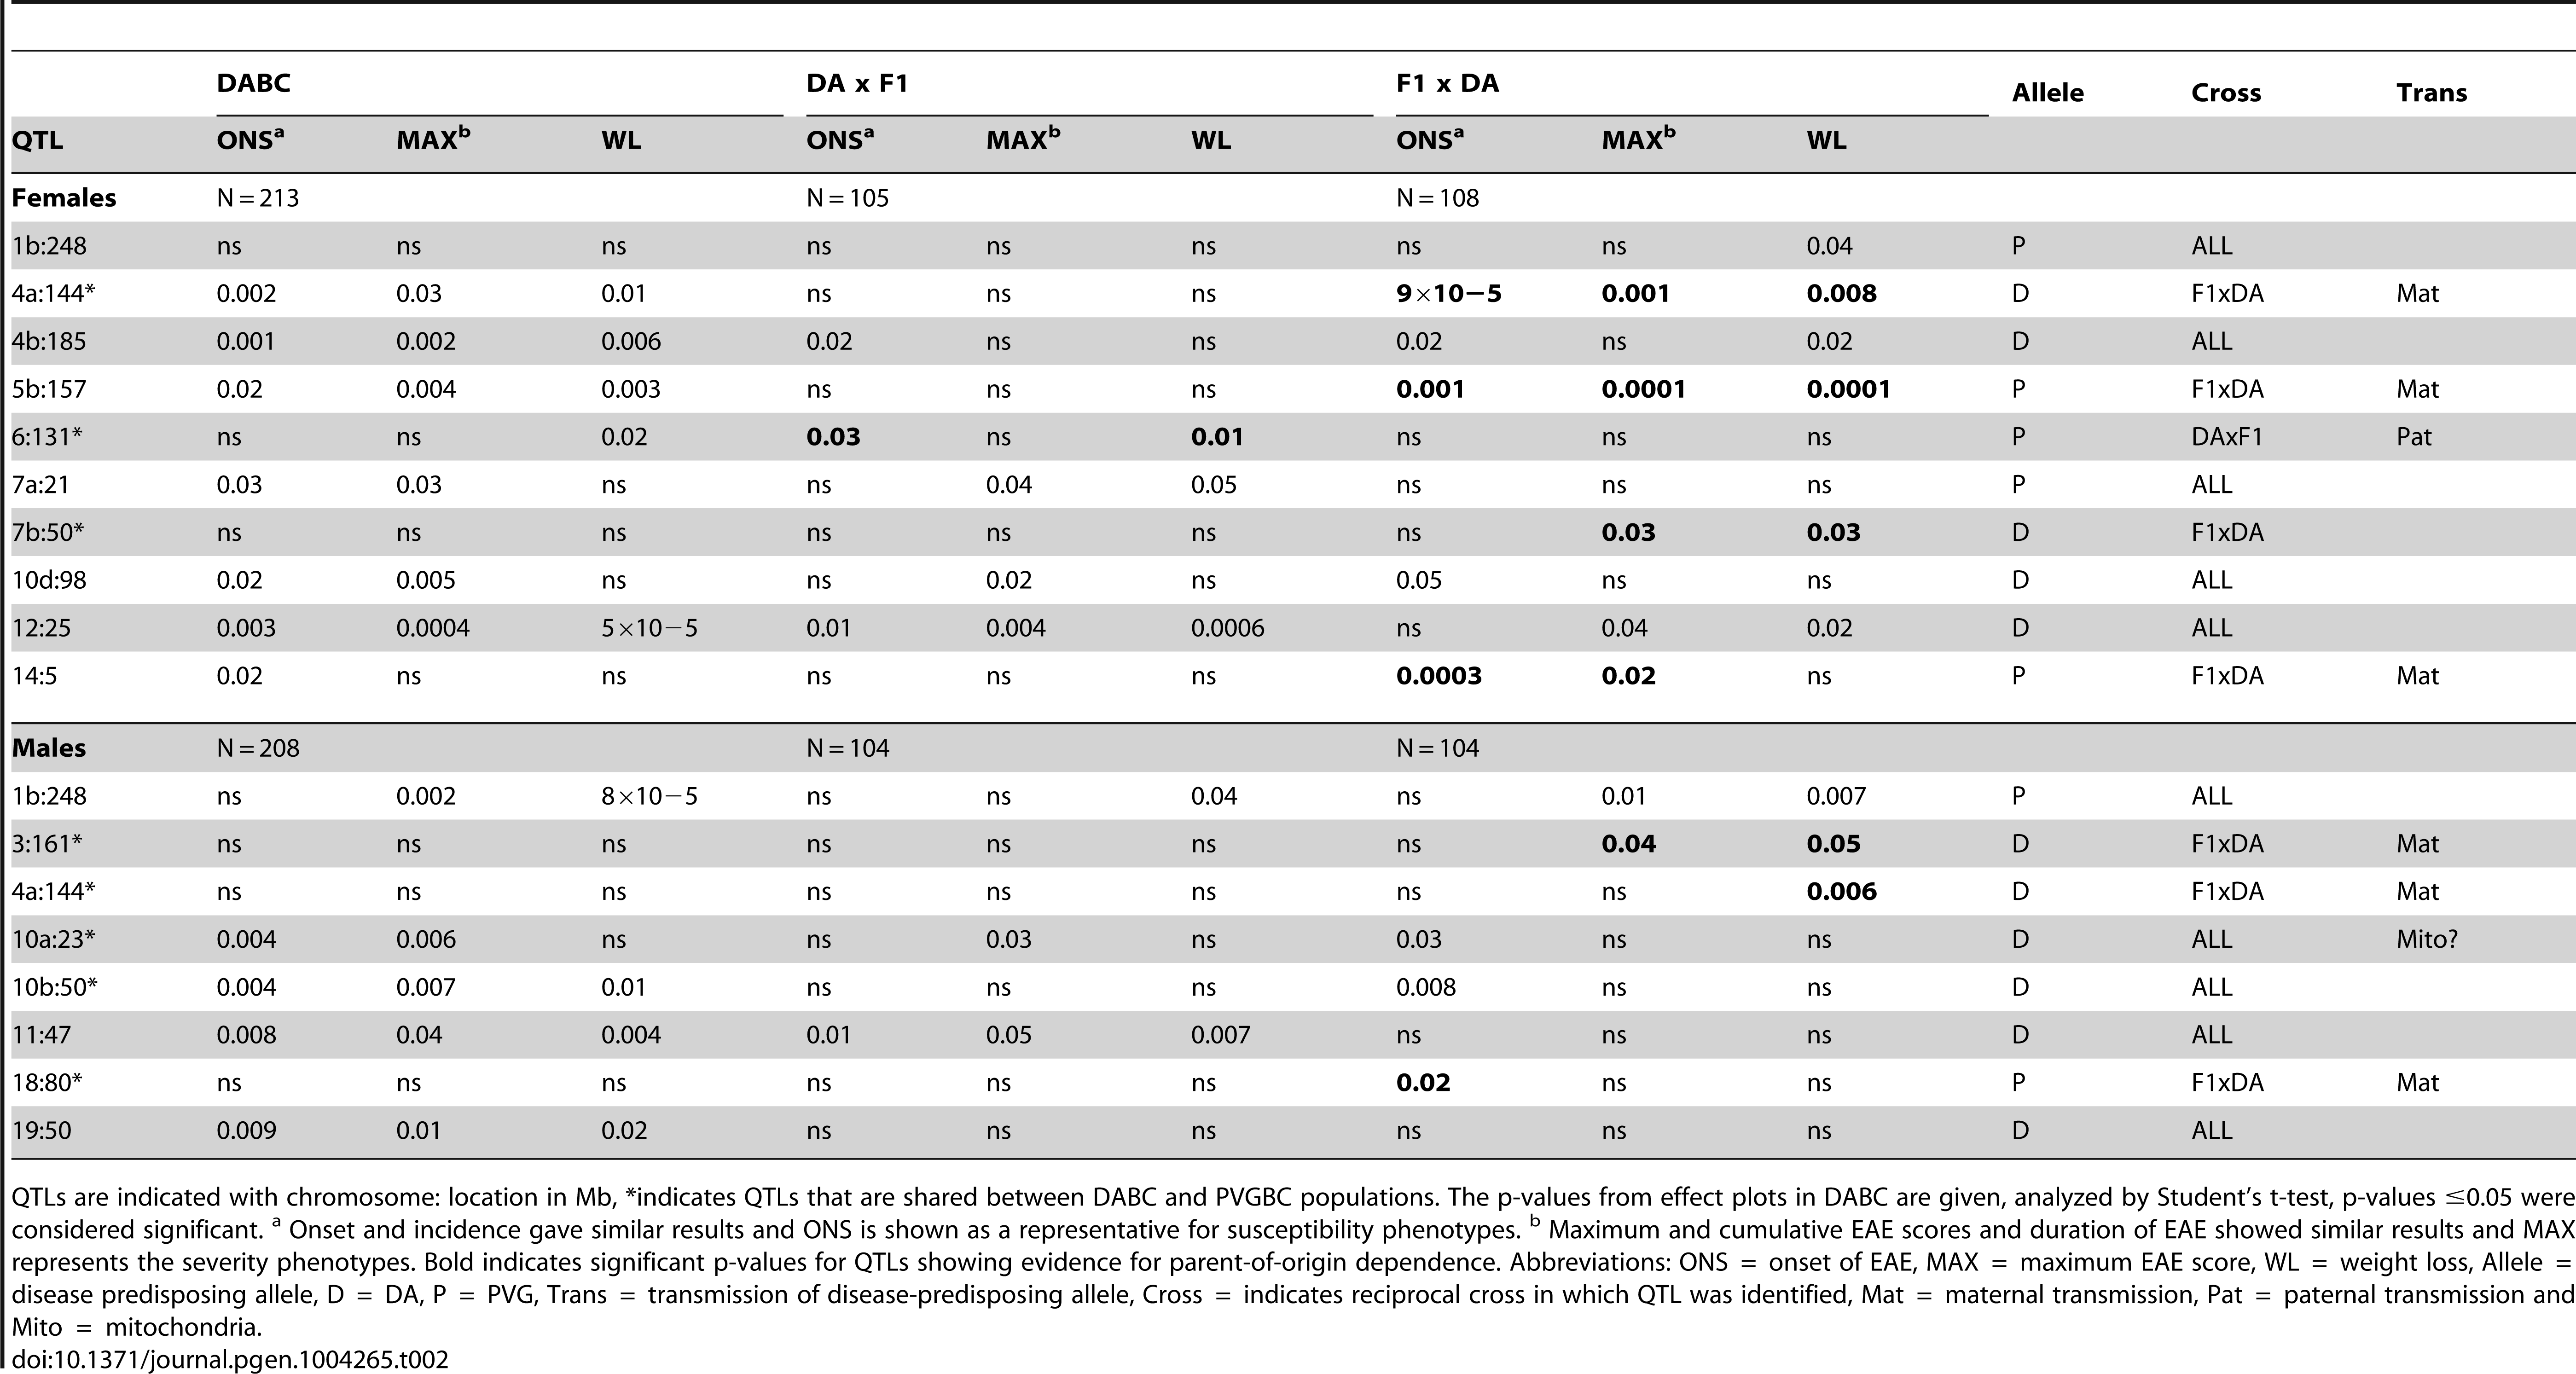 Allelic effects and transmission of QTLs mapped in the DABC population.